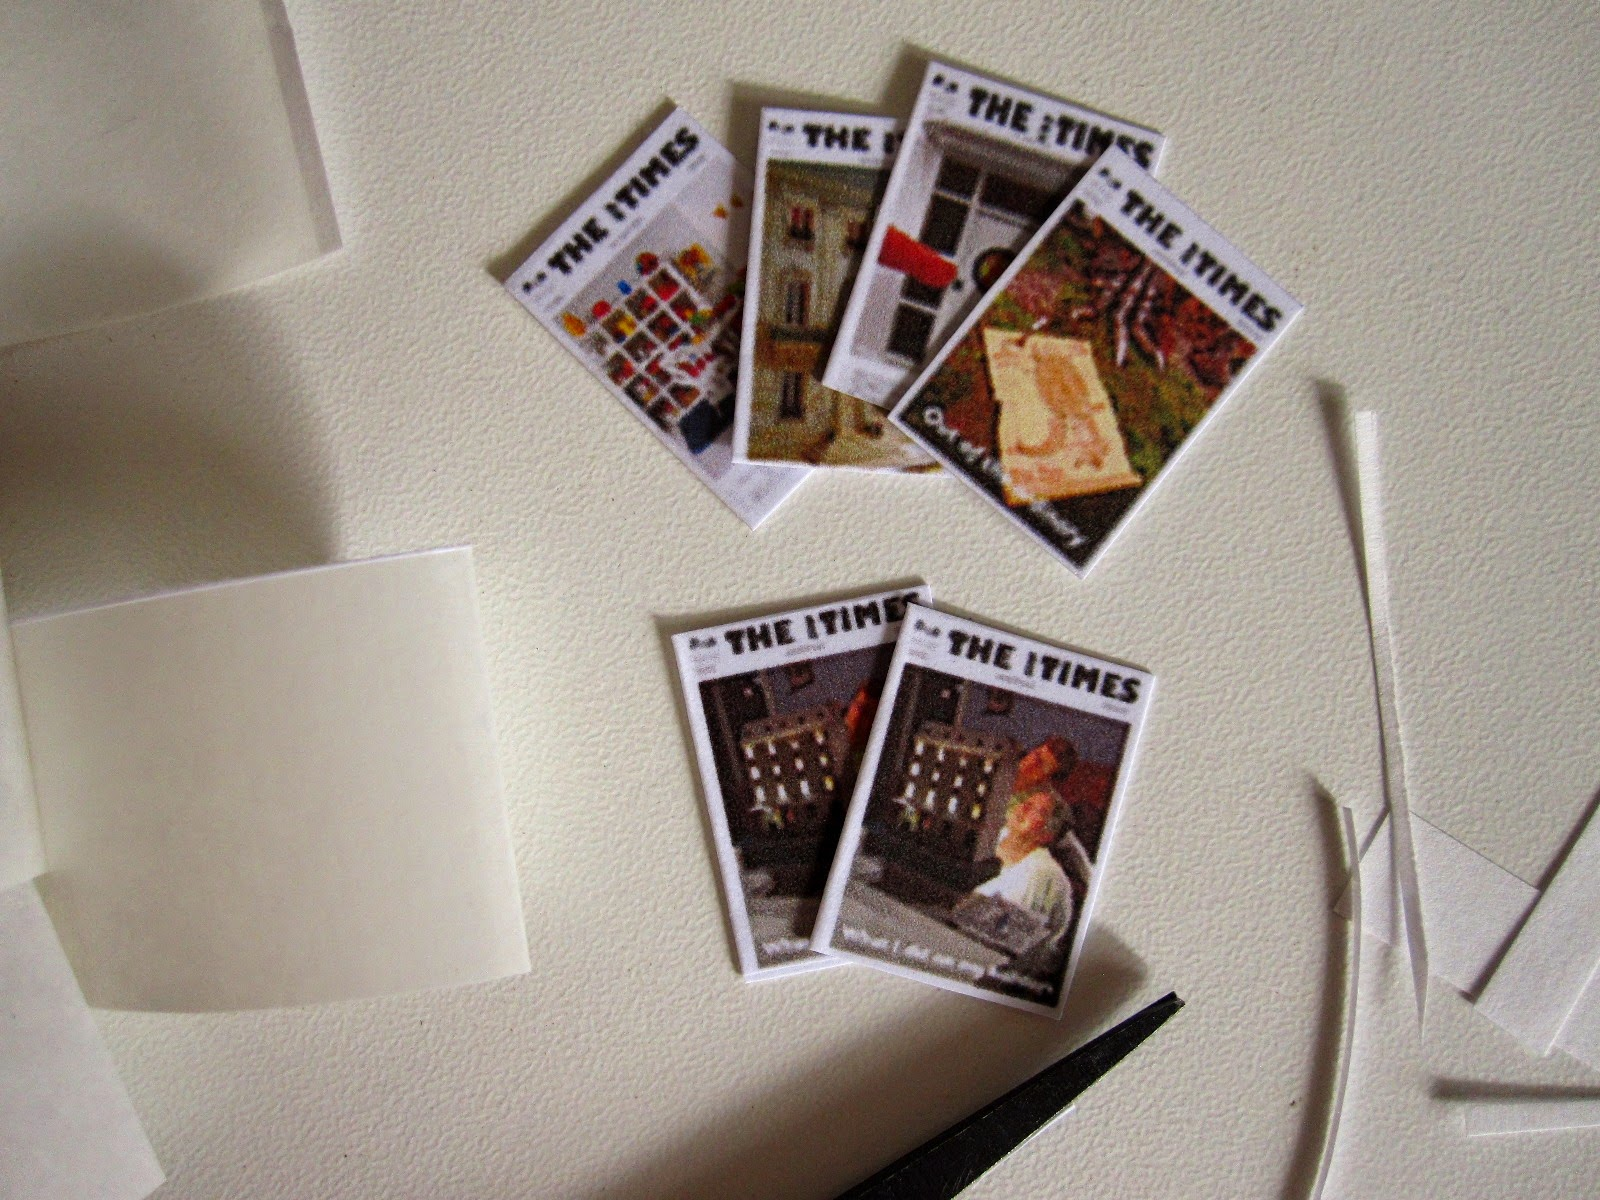 Dolls' house miniature versions of The tiny Times magazine.